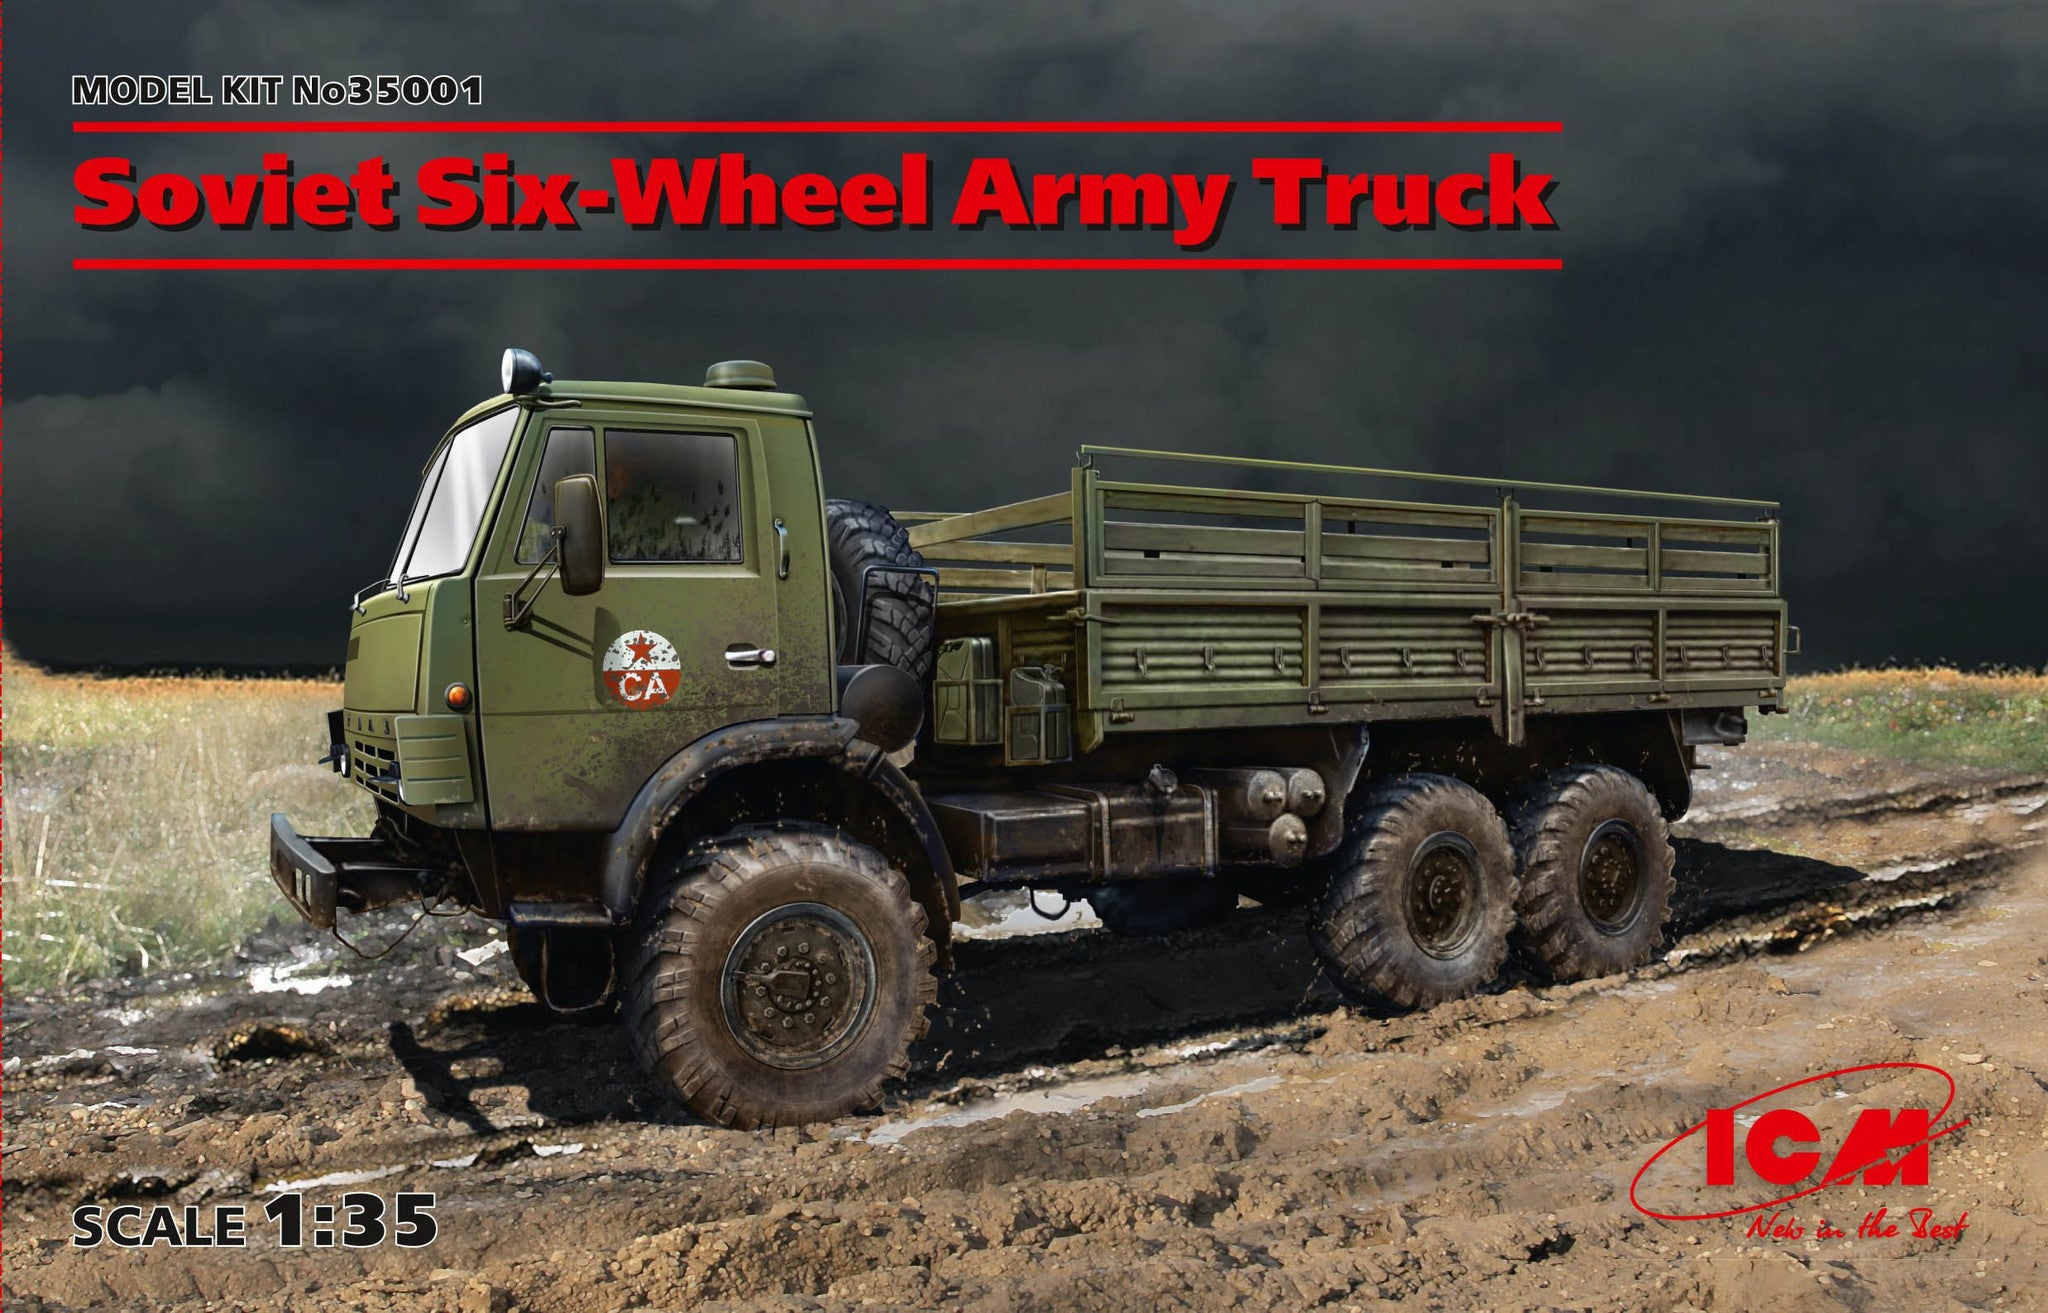 ICM Military Models 1/35 Soviet Six-Wheel Army Truck Kit